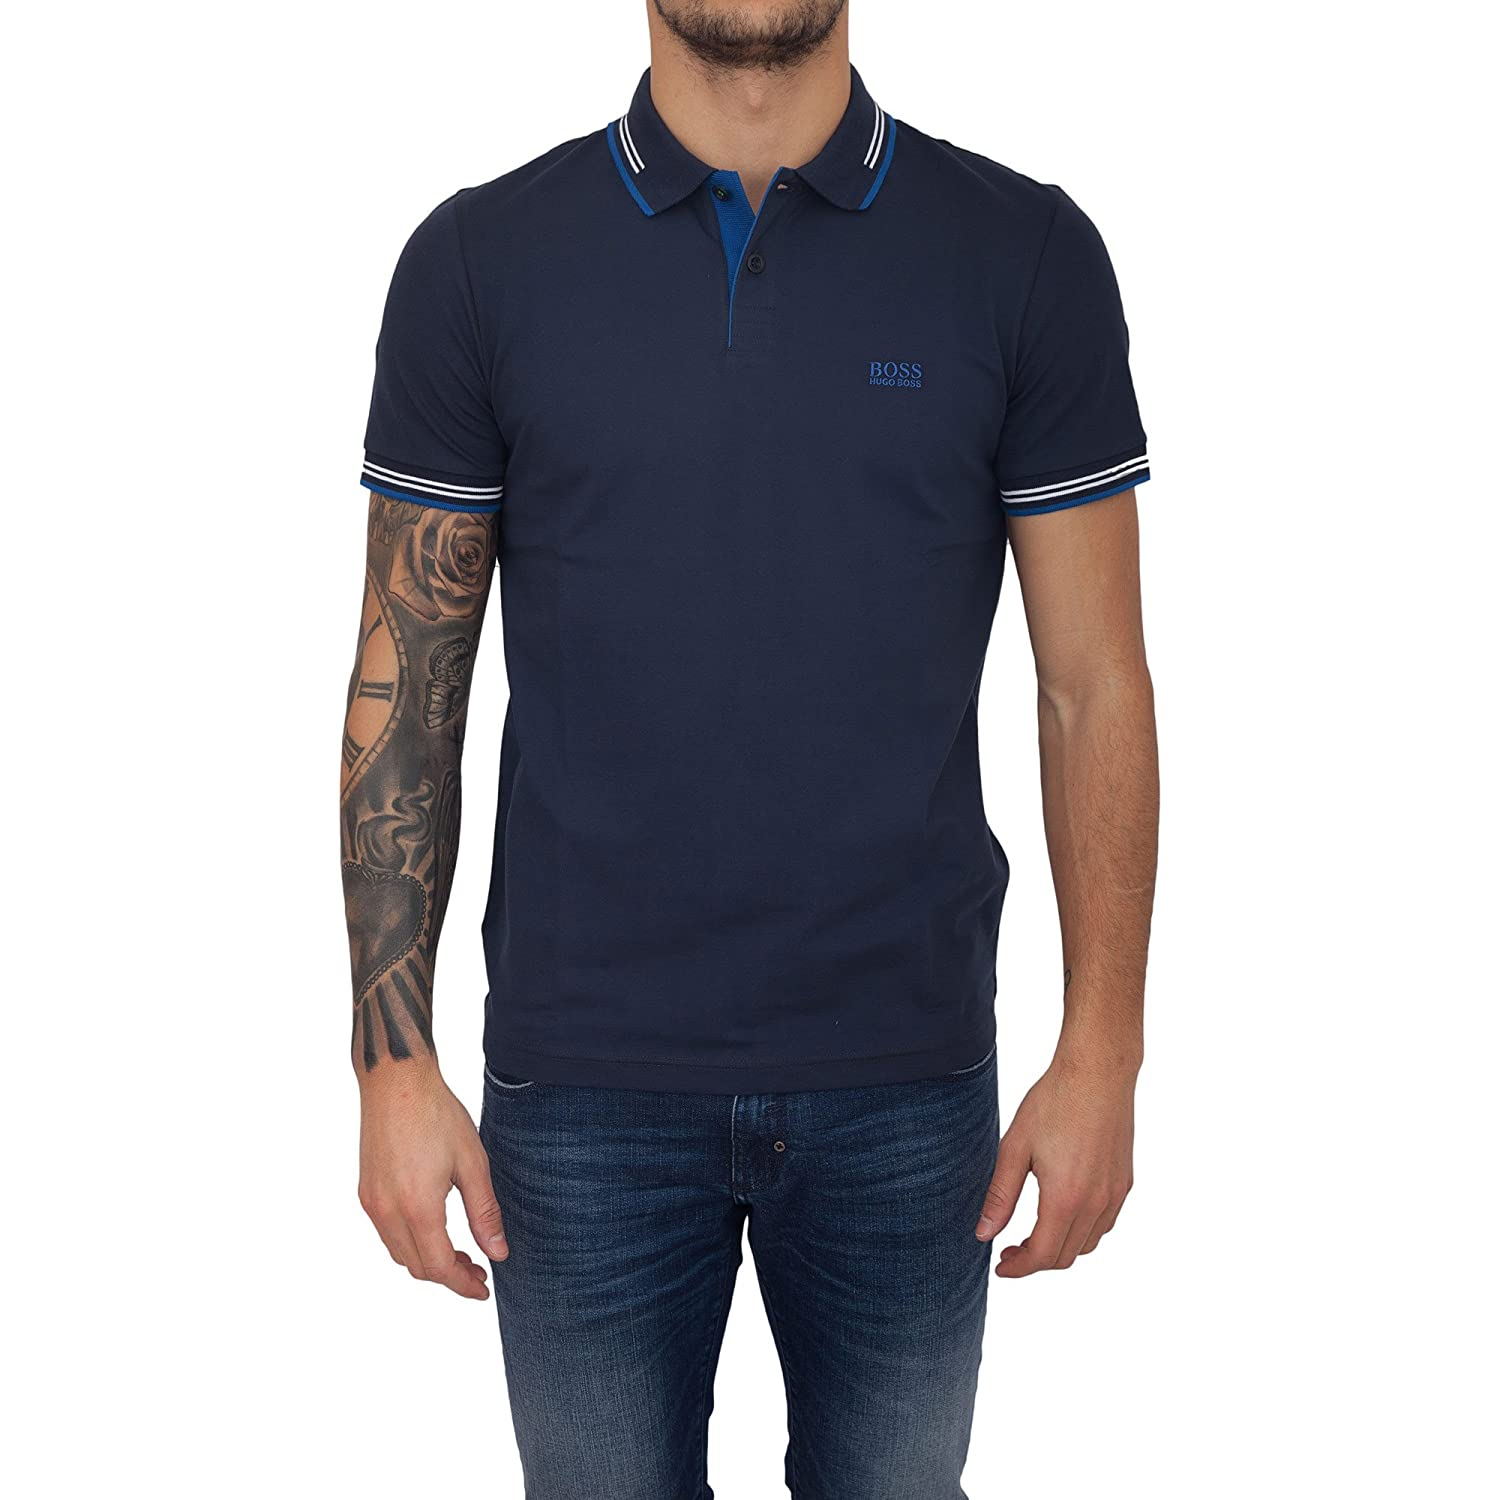 1a39eb536 BOSS Green Paul Slim Fit Stretch Polo Navy 409 50332503: Amazon.co.uk:  Clothing